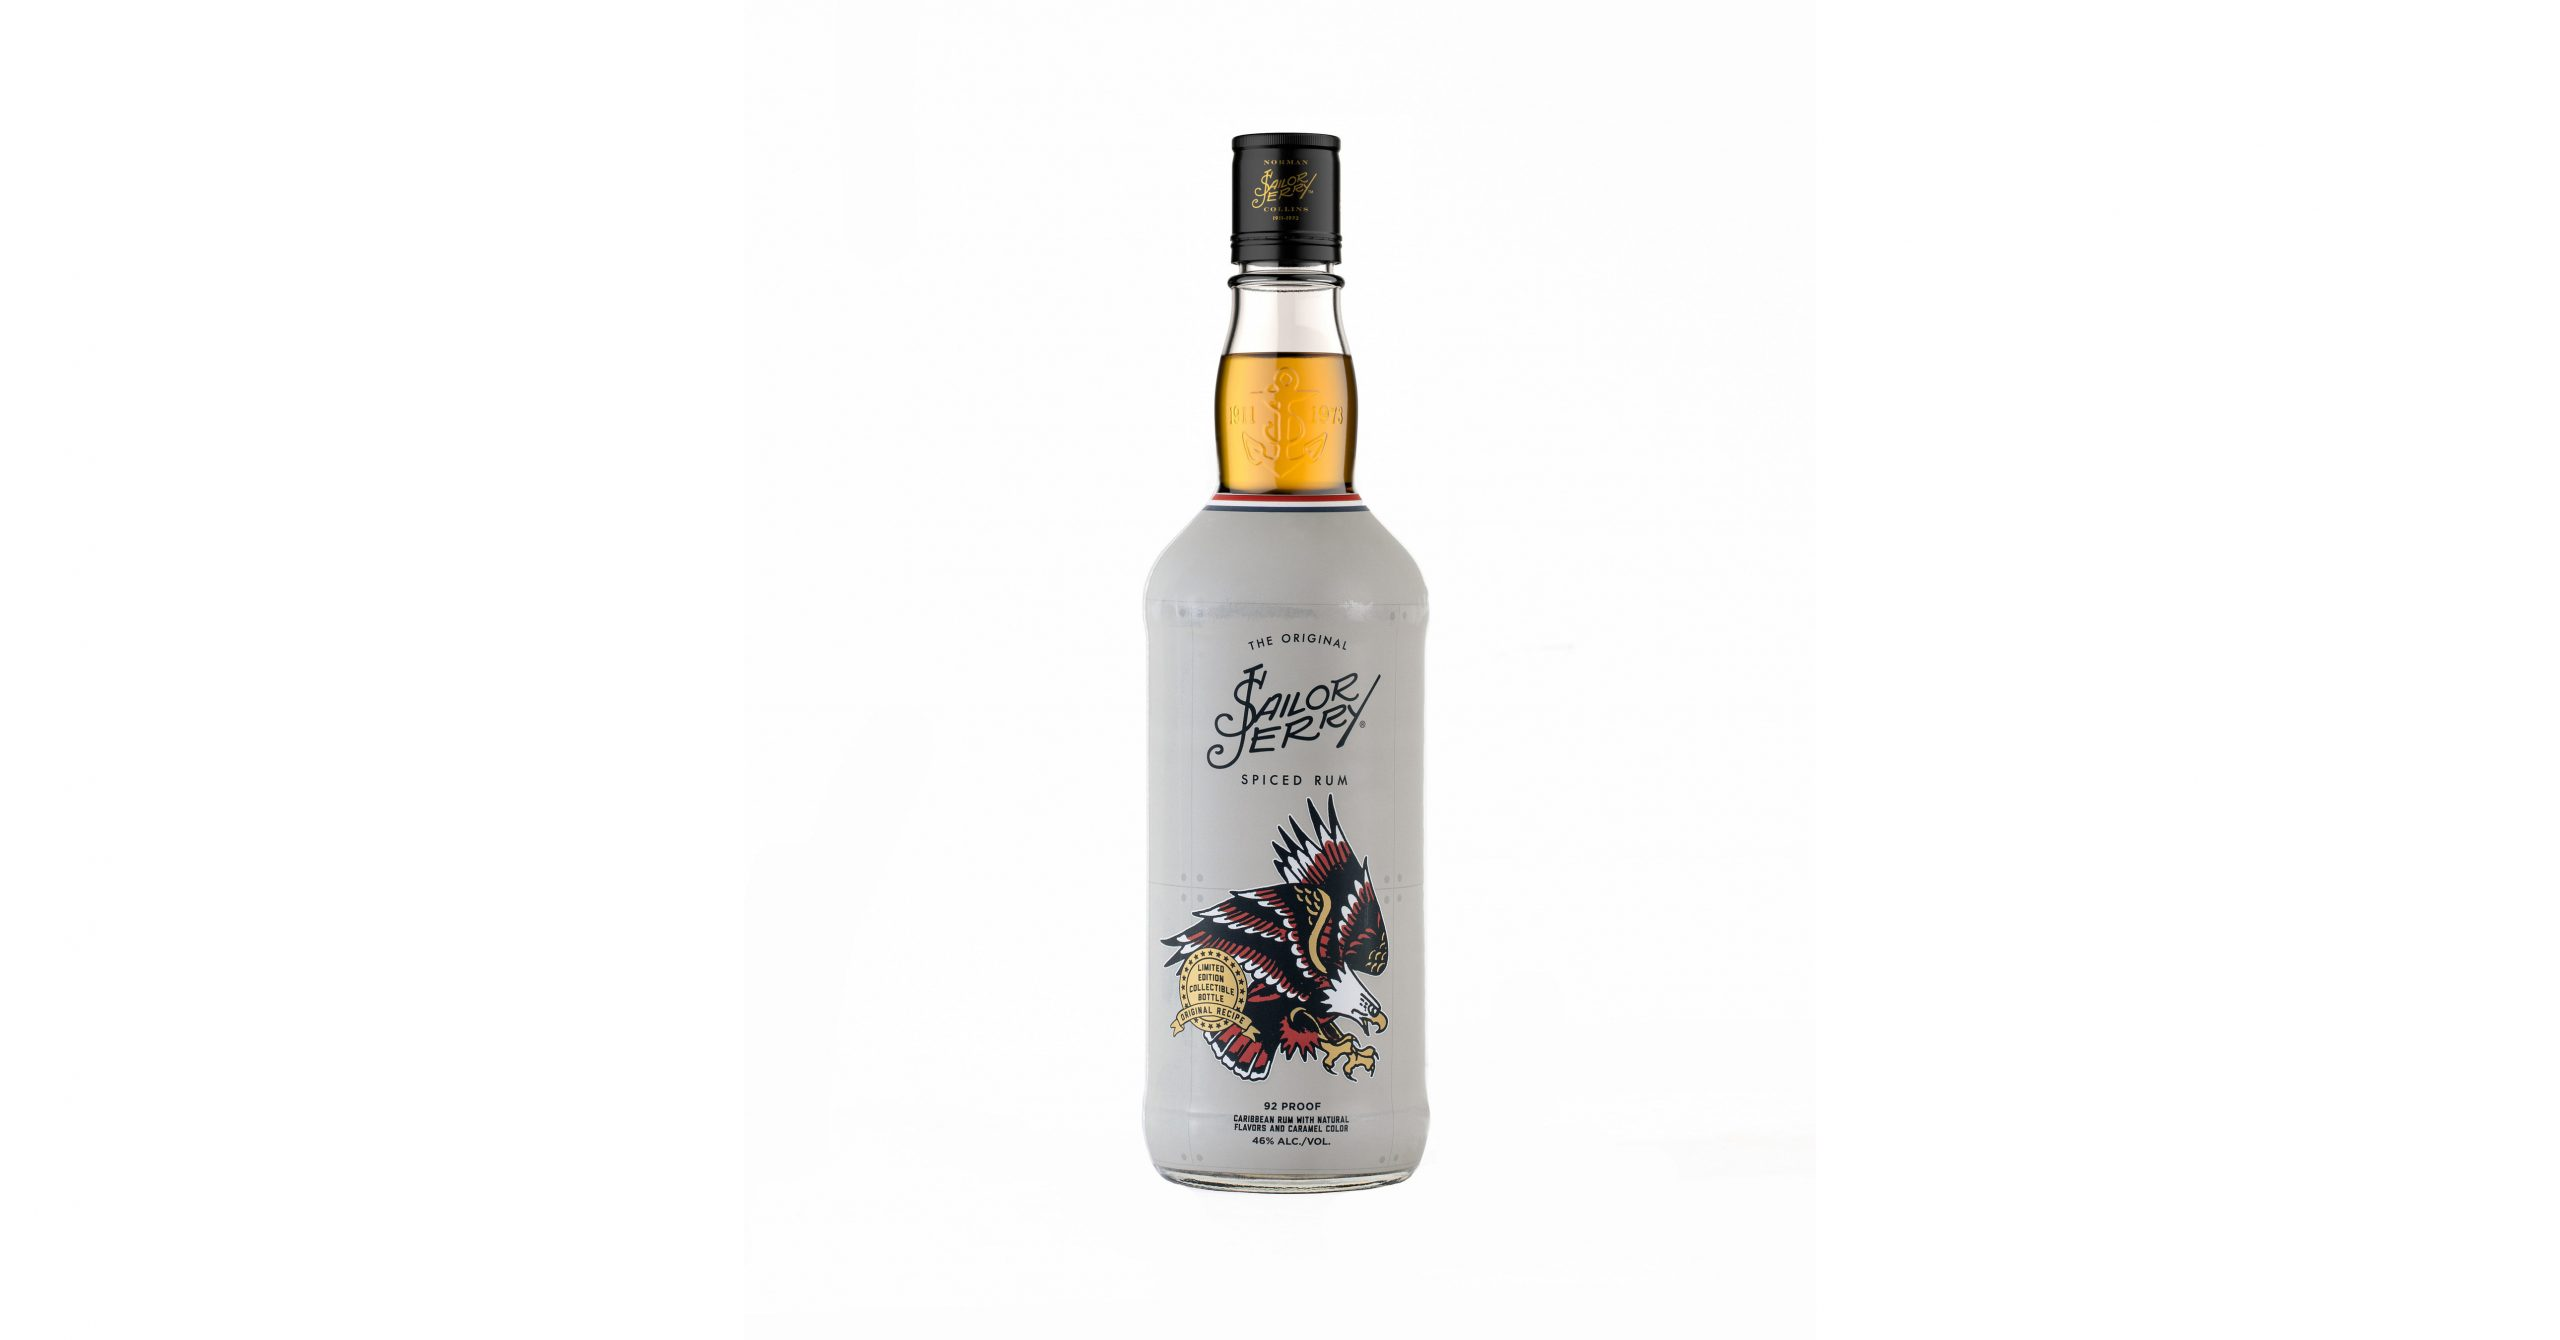 Sailor Jerry Spiced Rum Releases Limited-edition Bottle Commemorating Servicemen And Women For Military Appreciation Month photo